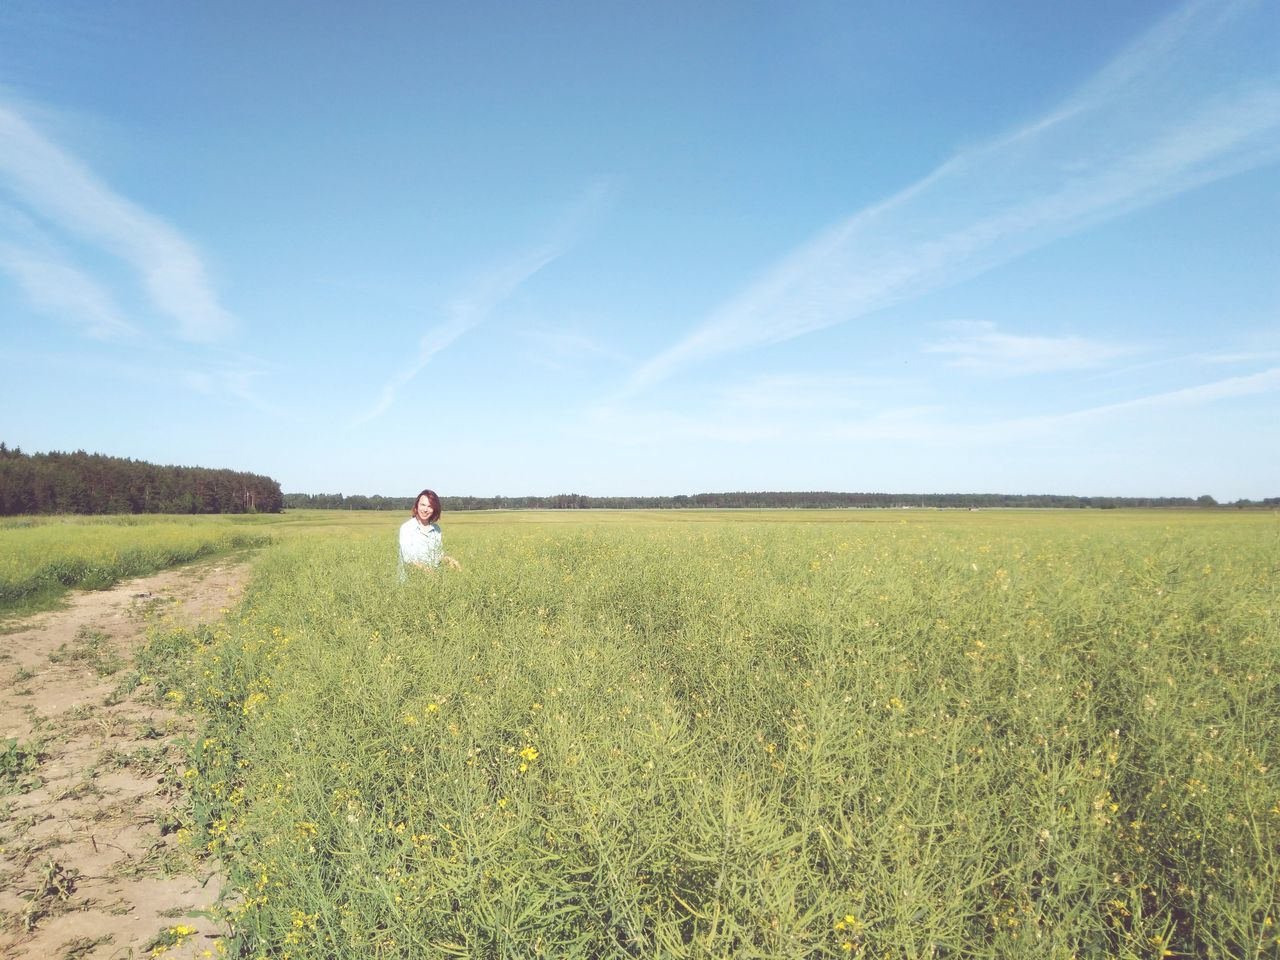 field, land, sky, one person, plant, beauty in nature, landscape, environment, scenics - nature, tranquility, day, tranquil scene, nature, cloud - sky, growth, women, real people, grass, adult, non-urban scene, outdoors